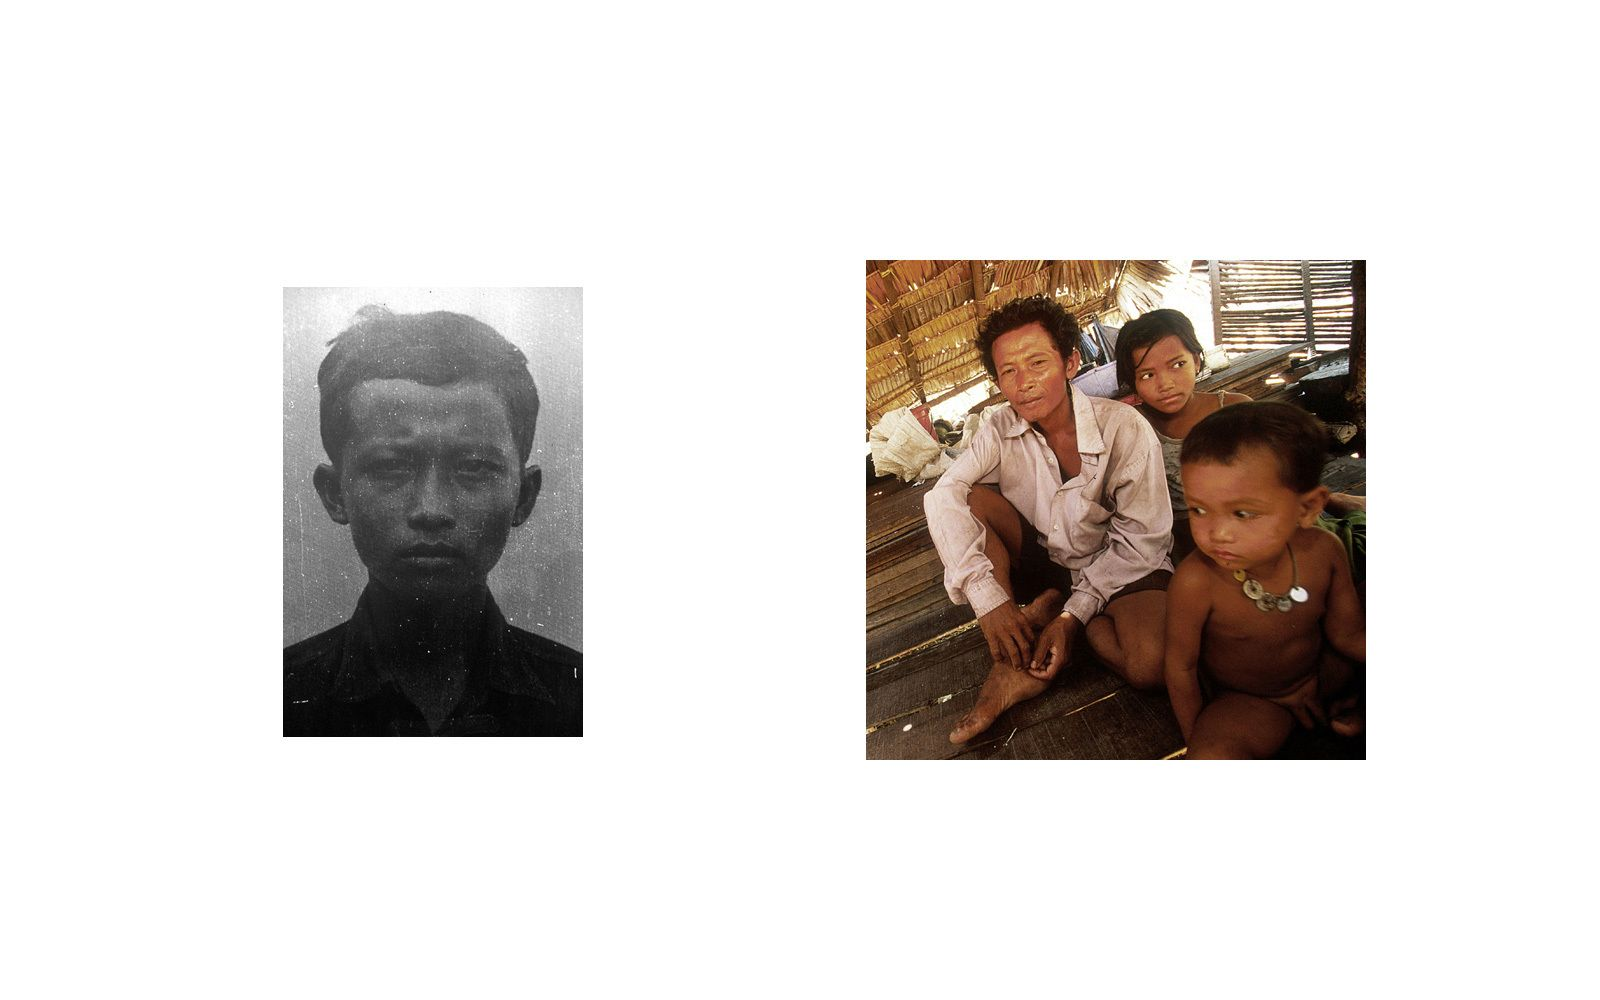 Nun Hong  ,a former Khmer Rouge soldier, was a guard at Tuol Sleng(S-21) Prison.